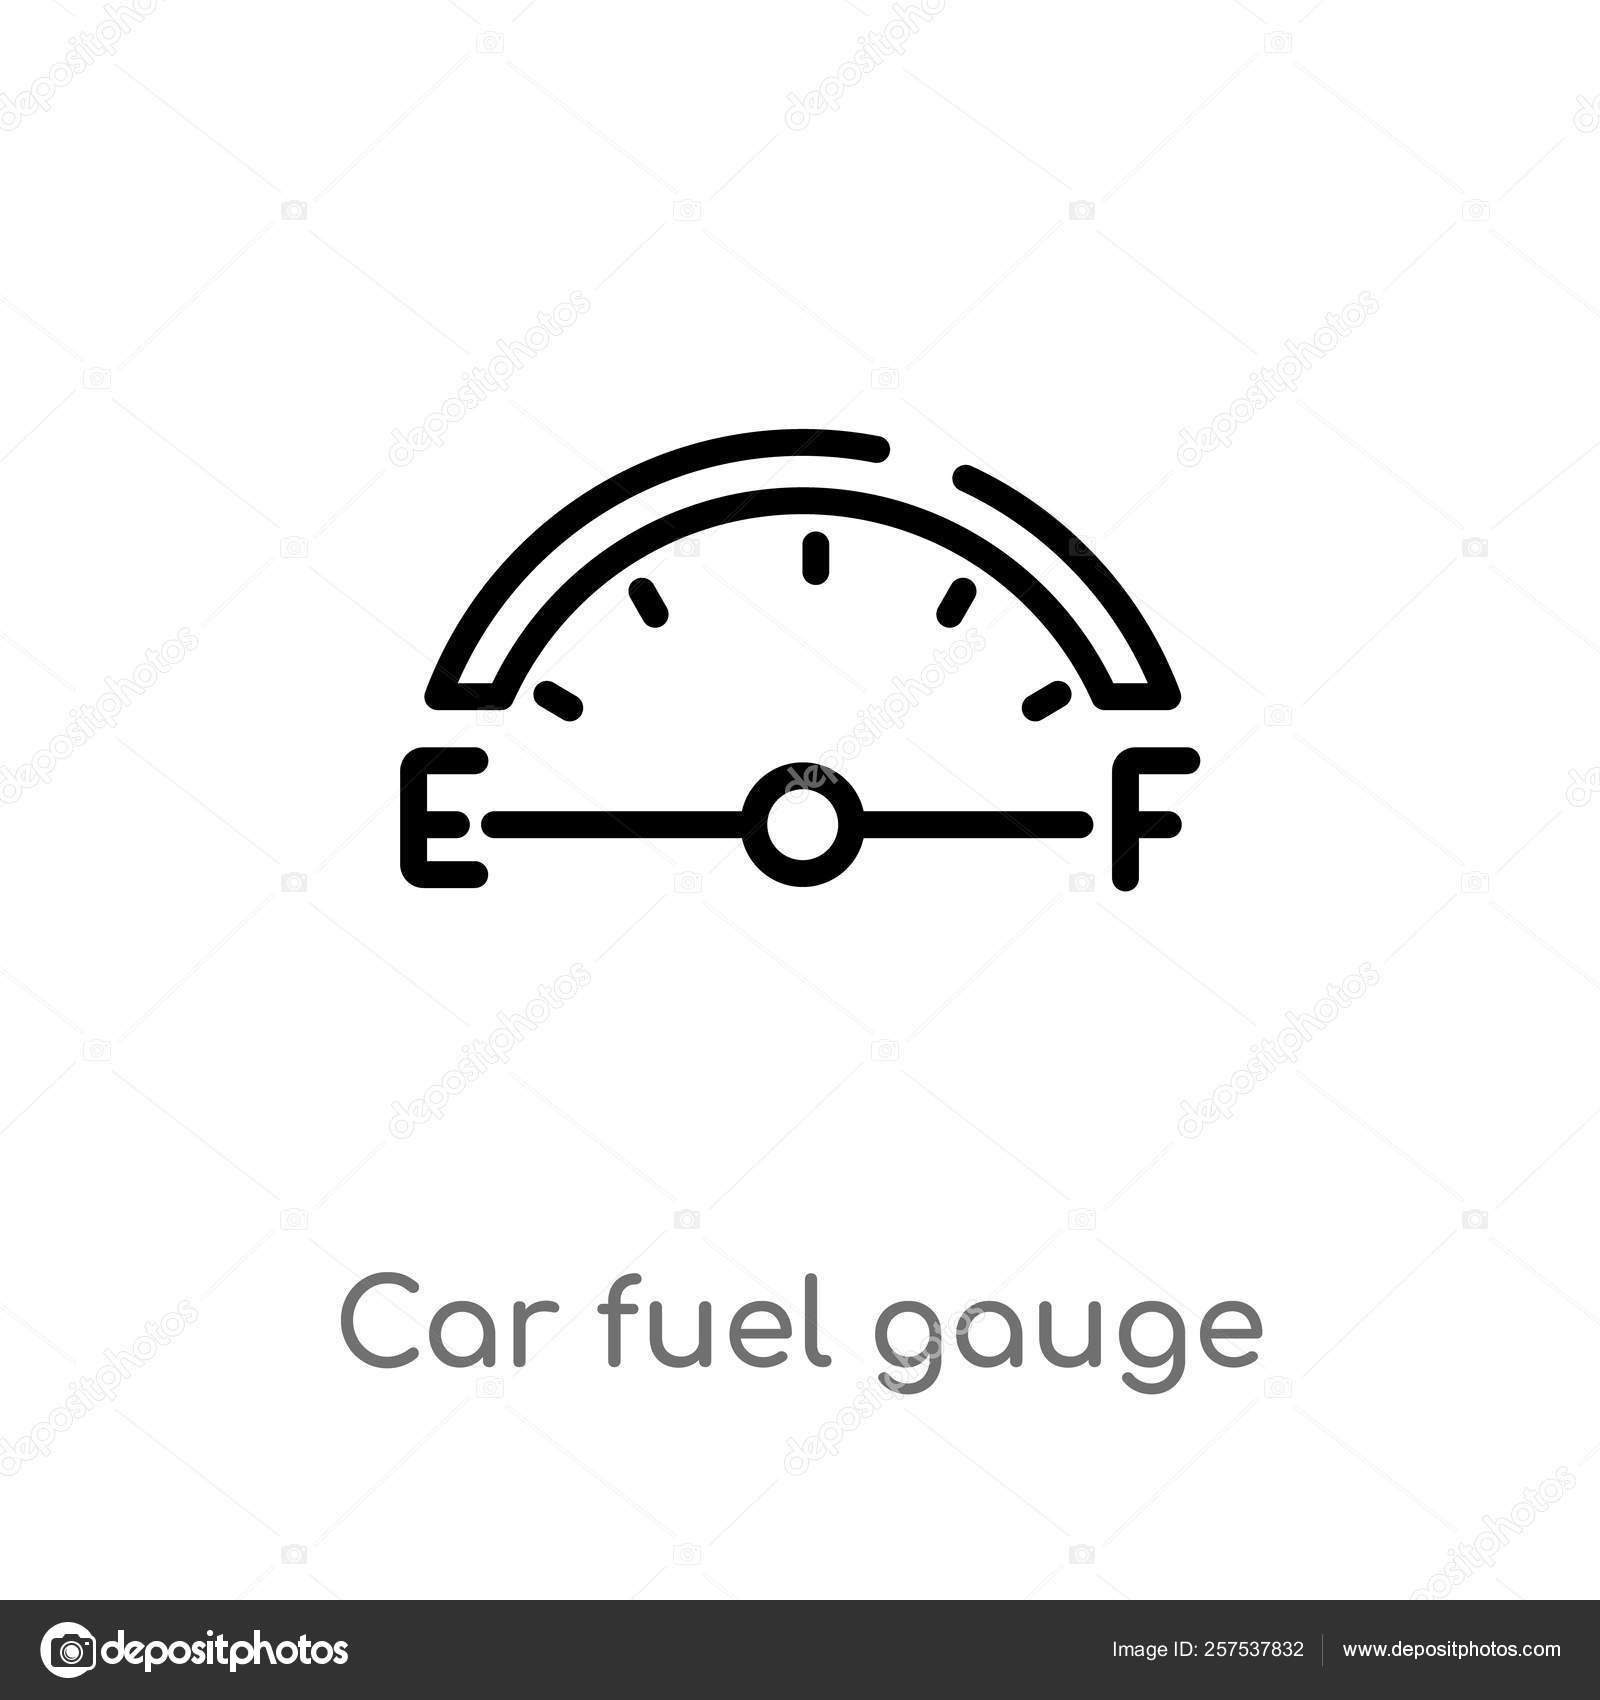 Outline Car Fuel Gauge Vector Icon Isolated Black Simple